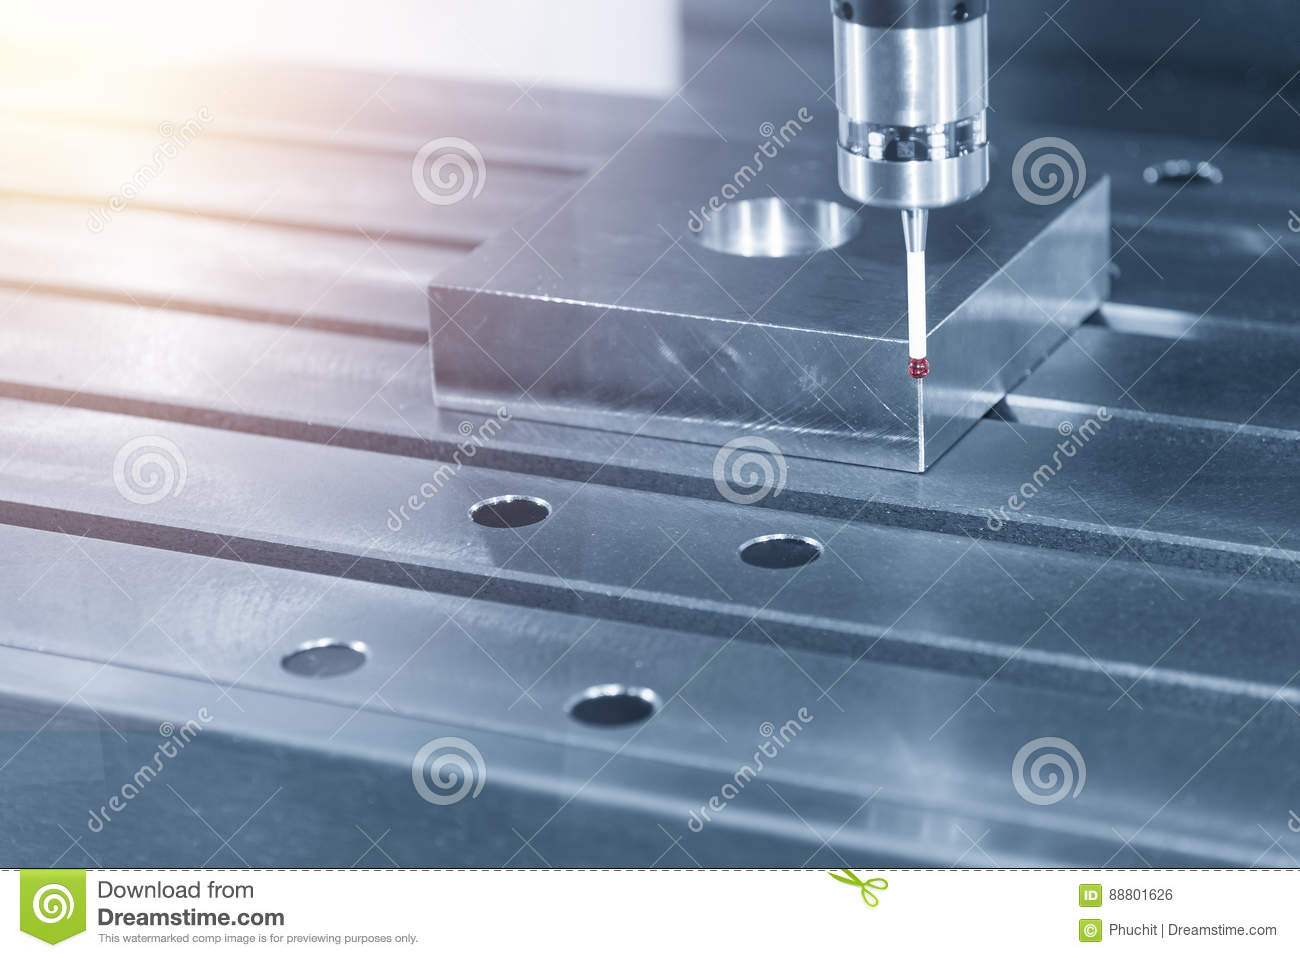 The measurement probe stock photo. Image of dimensional - 88801626